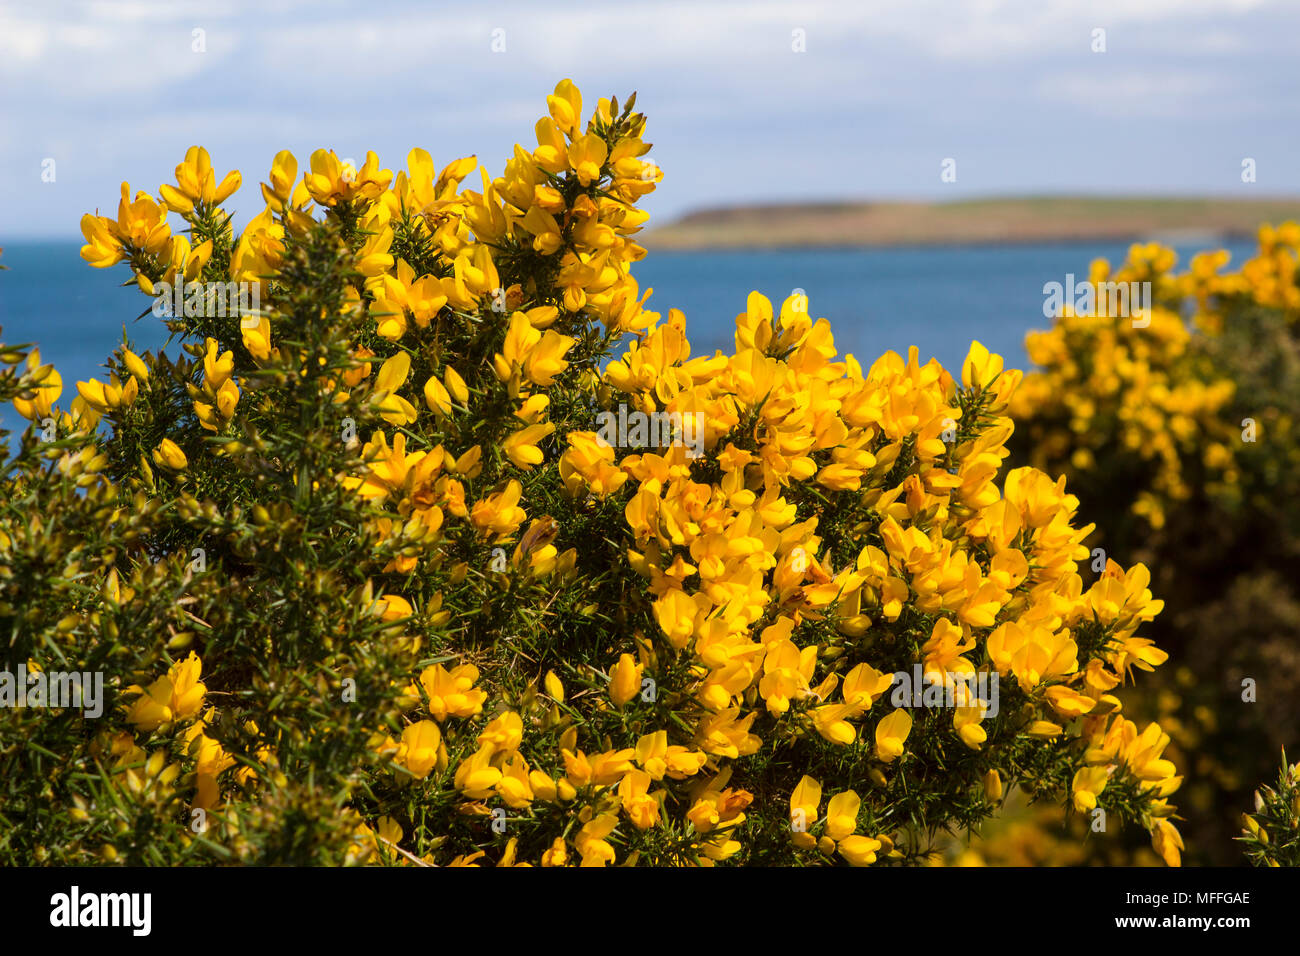 Yellow flowers on a common whin bush or gorse displaying their full yellow flowers on a common whin bush or gorse displaying their full spring glory in county down northern ireland these heavily thorned bushes are a c mightylinksfo